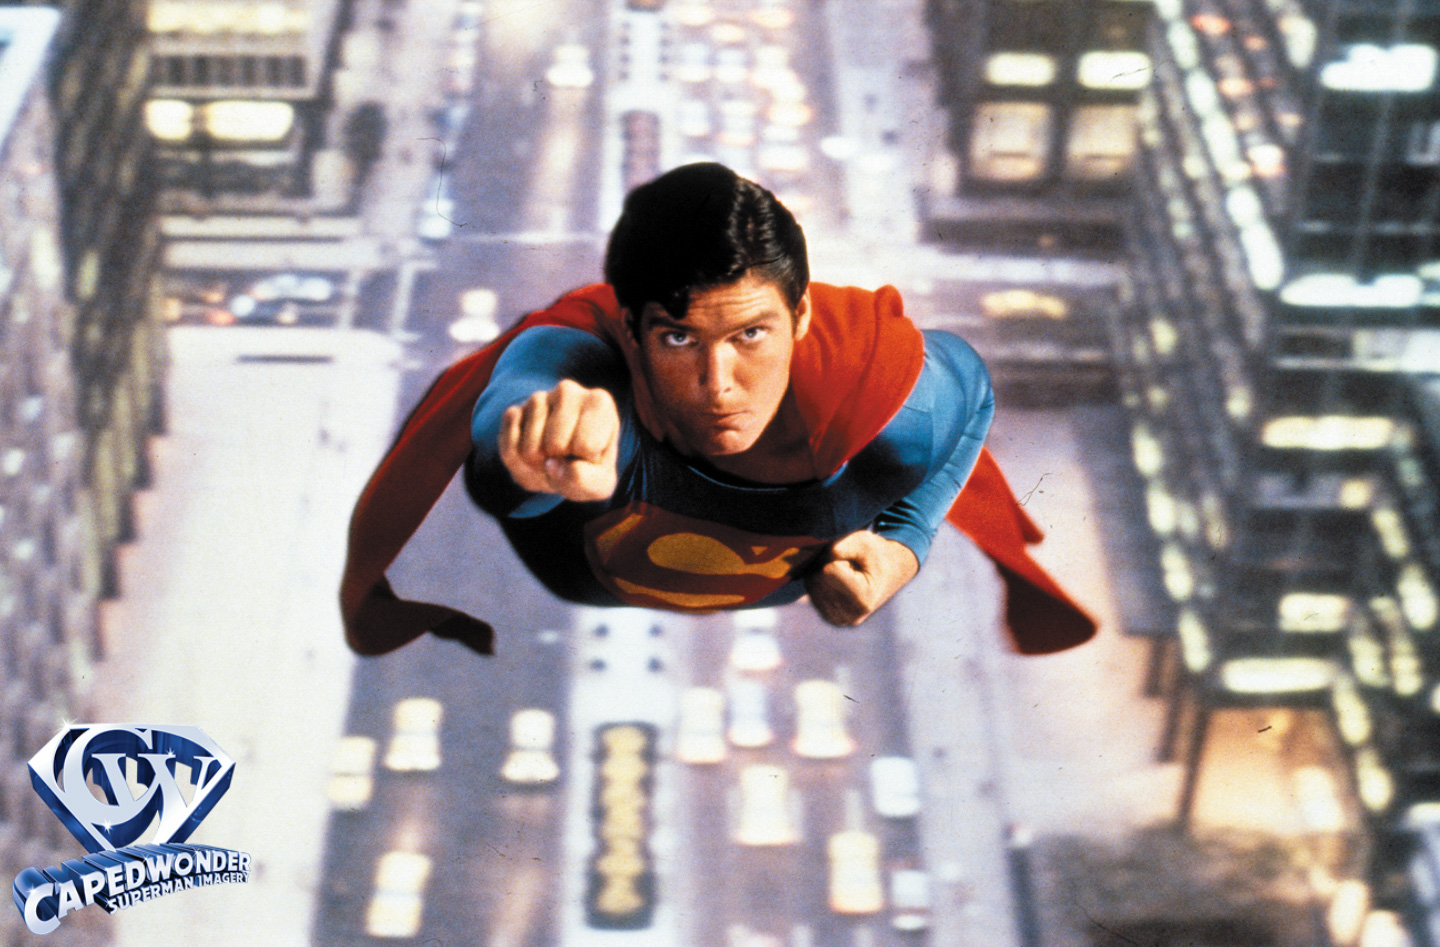 Superman the movie gallery the gift of flight capedwonder cw stm gift of flight 01 publicscrutiny Gallery